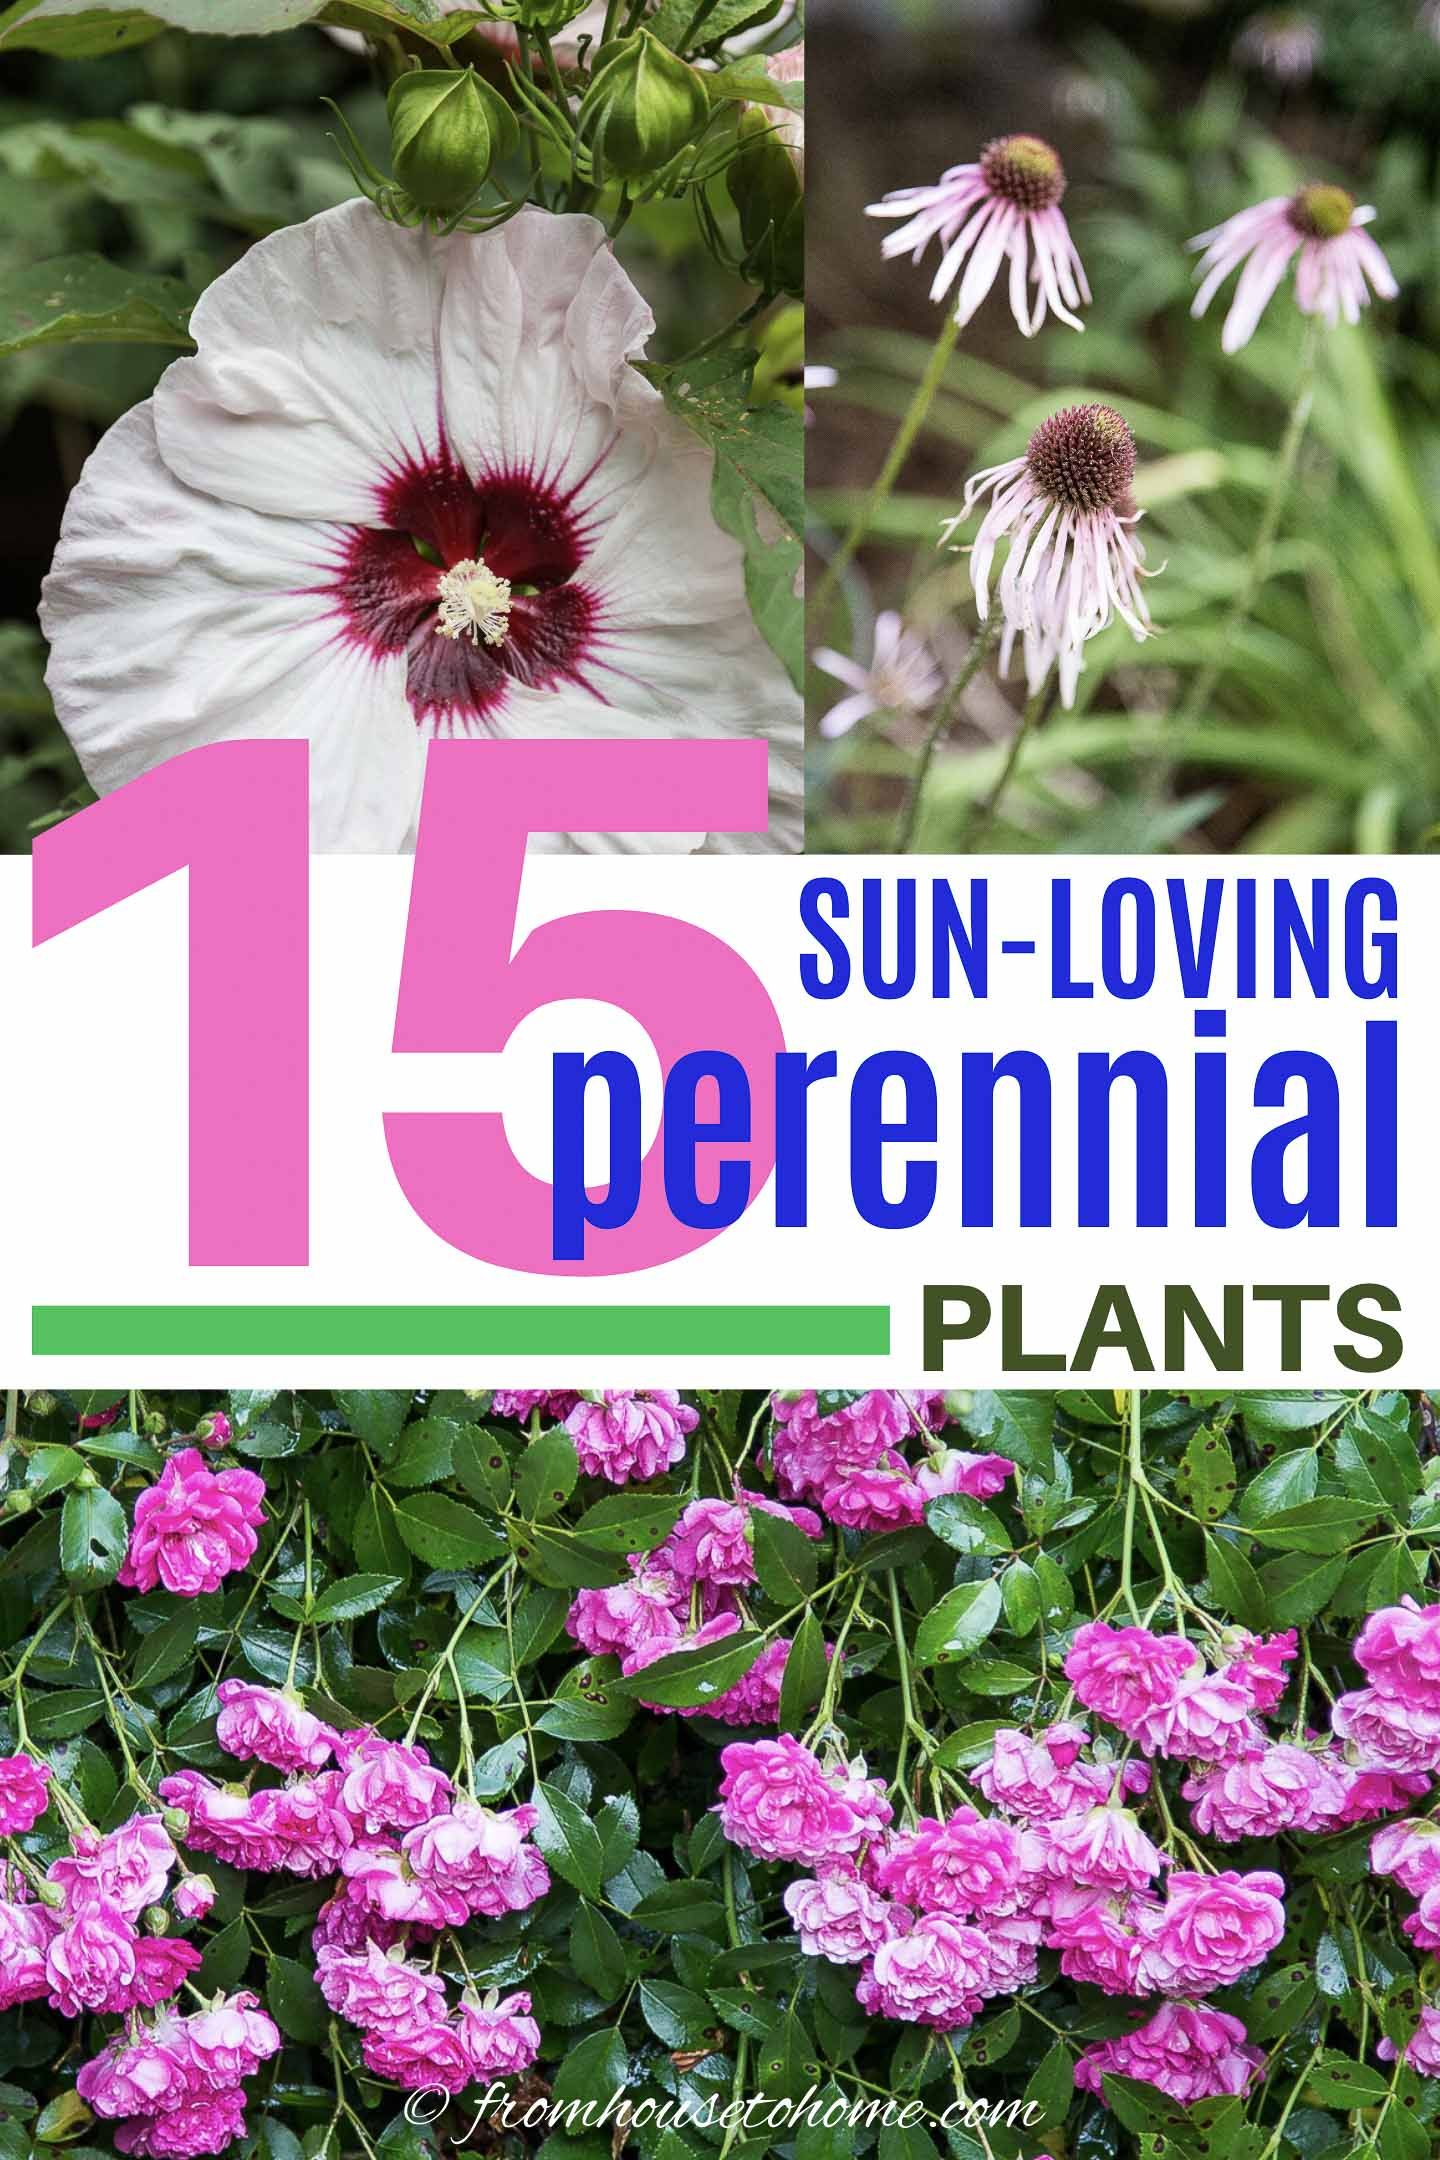 Full Sun Perennials 15 Beautiful Low Maintenance Plants That Thrive In The Sun Gardening From House To Home In 2020 Full Sun Perennials Sun Perennials Low Maintenance Plants